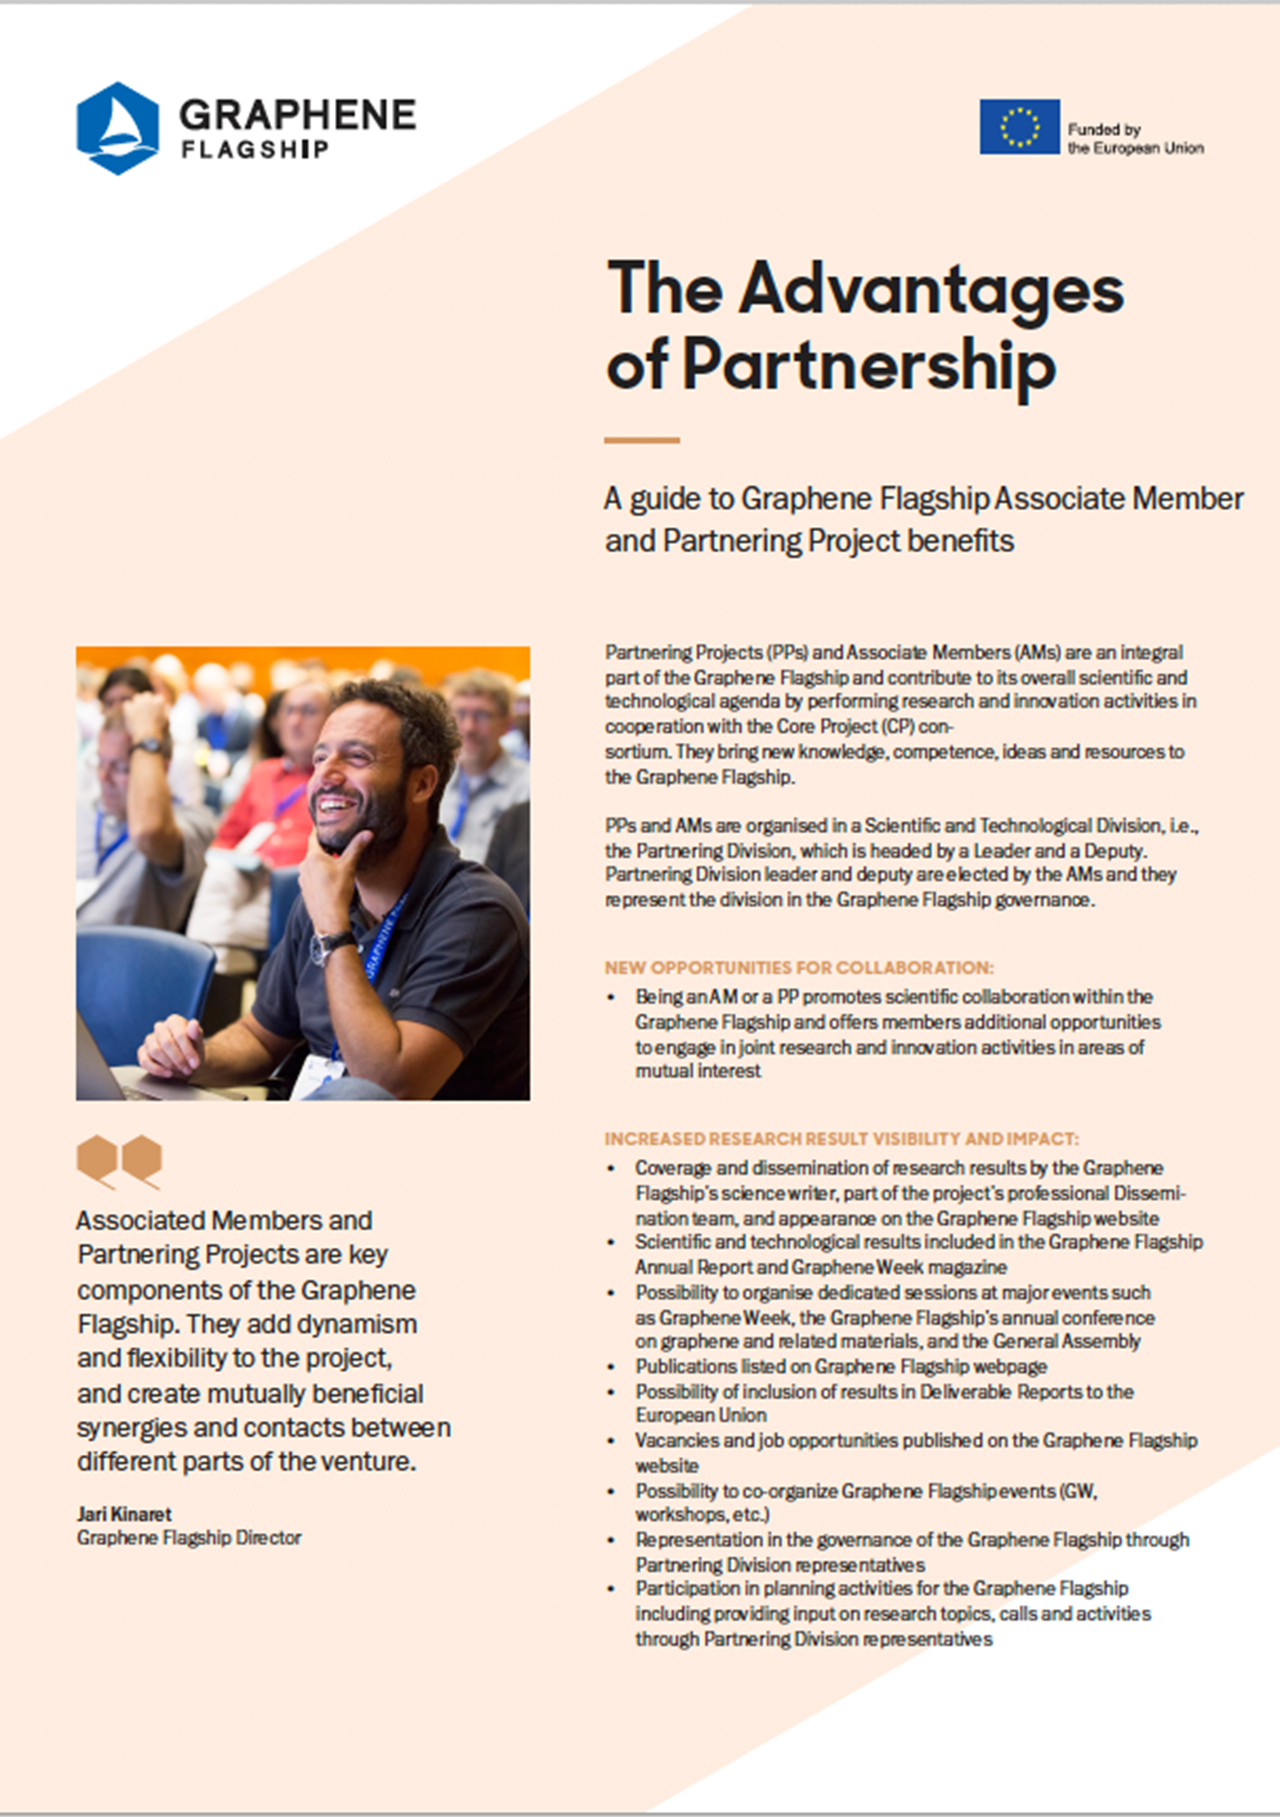 The Advantages of Partnership leaflet cover page.